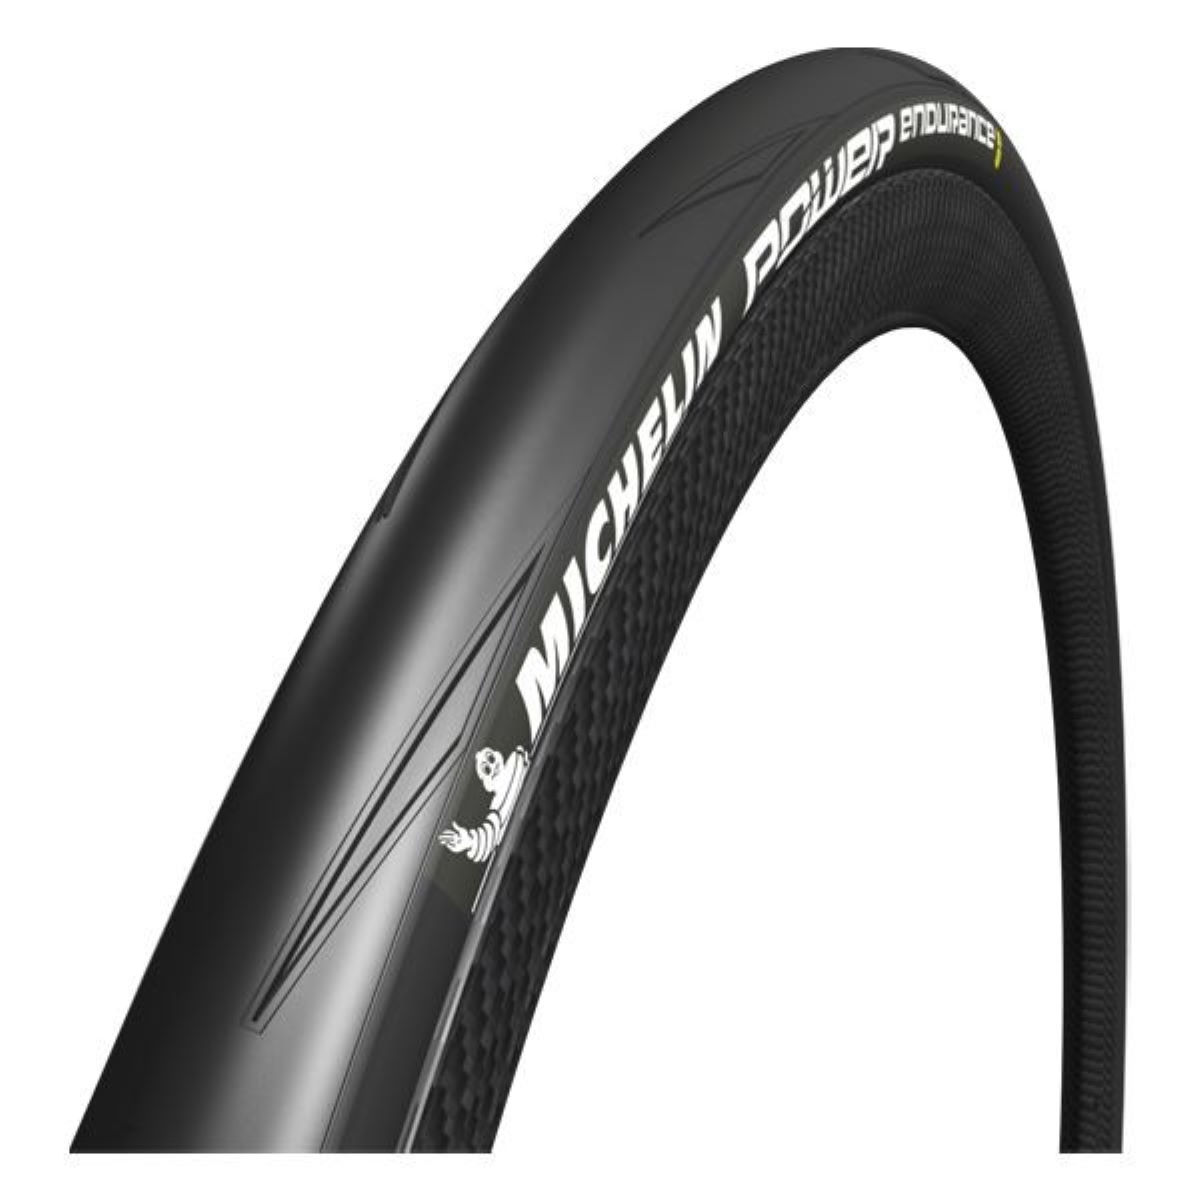 Pneu de route Michelin Power Endurance (souple, 700 x 28 c) - Noir